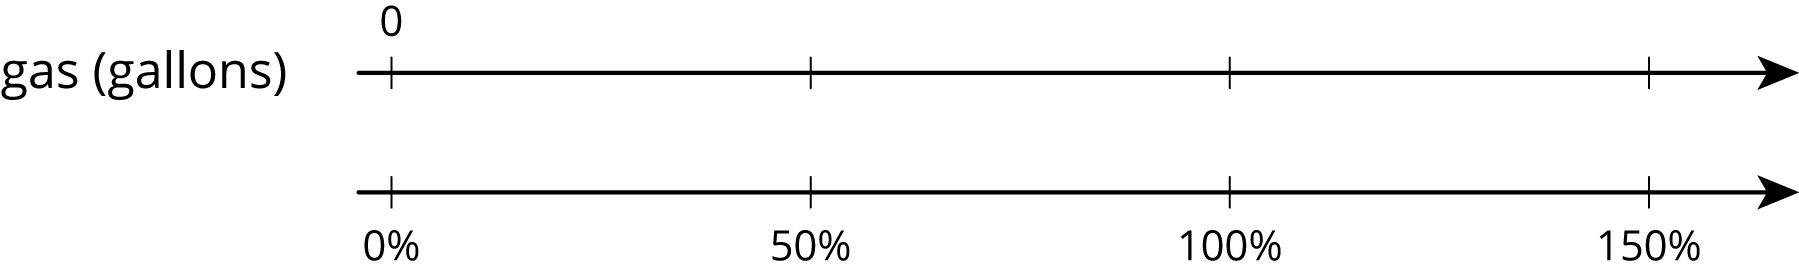 """A double number line for """"gas in gallons"""" with 4 evenly spaced tick marks. The top number line, starting with the first tick mark, has the numbers zero; the remaining tick marks are not labeled. The bottom number line, starting with the first tick mark, has zero percent, 50 percent, 100 percent, and 150 percent labeled."""